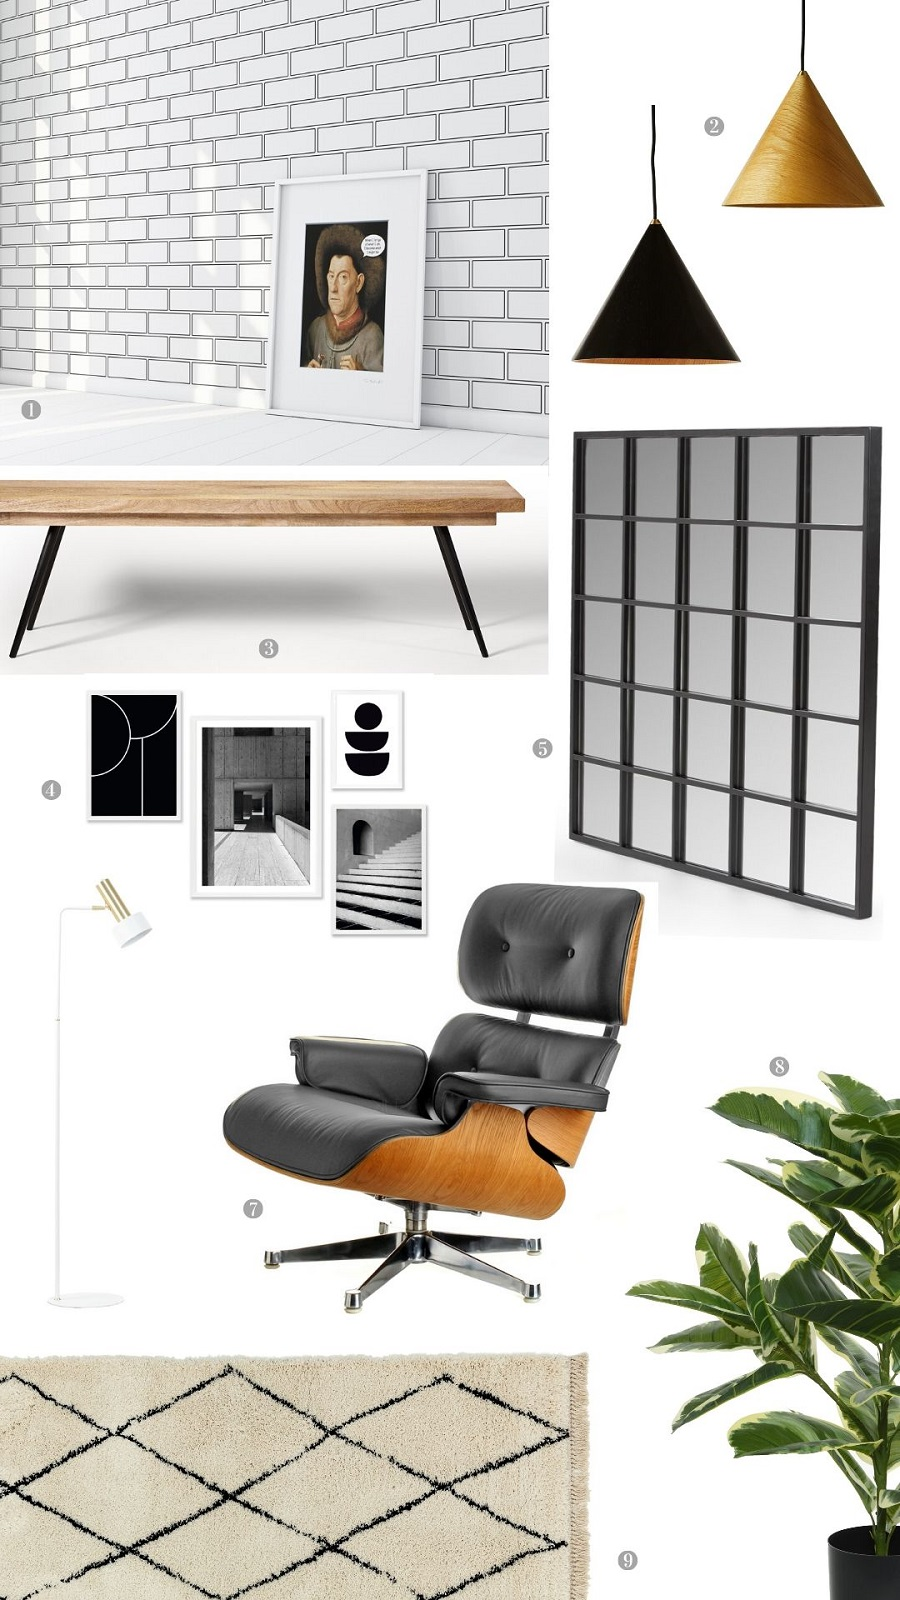 A Monochrome Modern Sitting Room and How to Get The Look